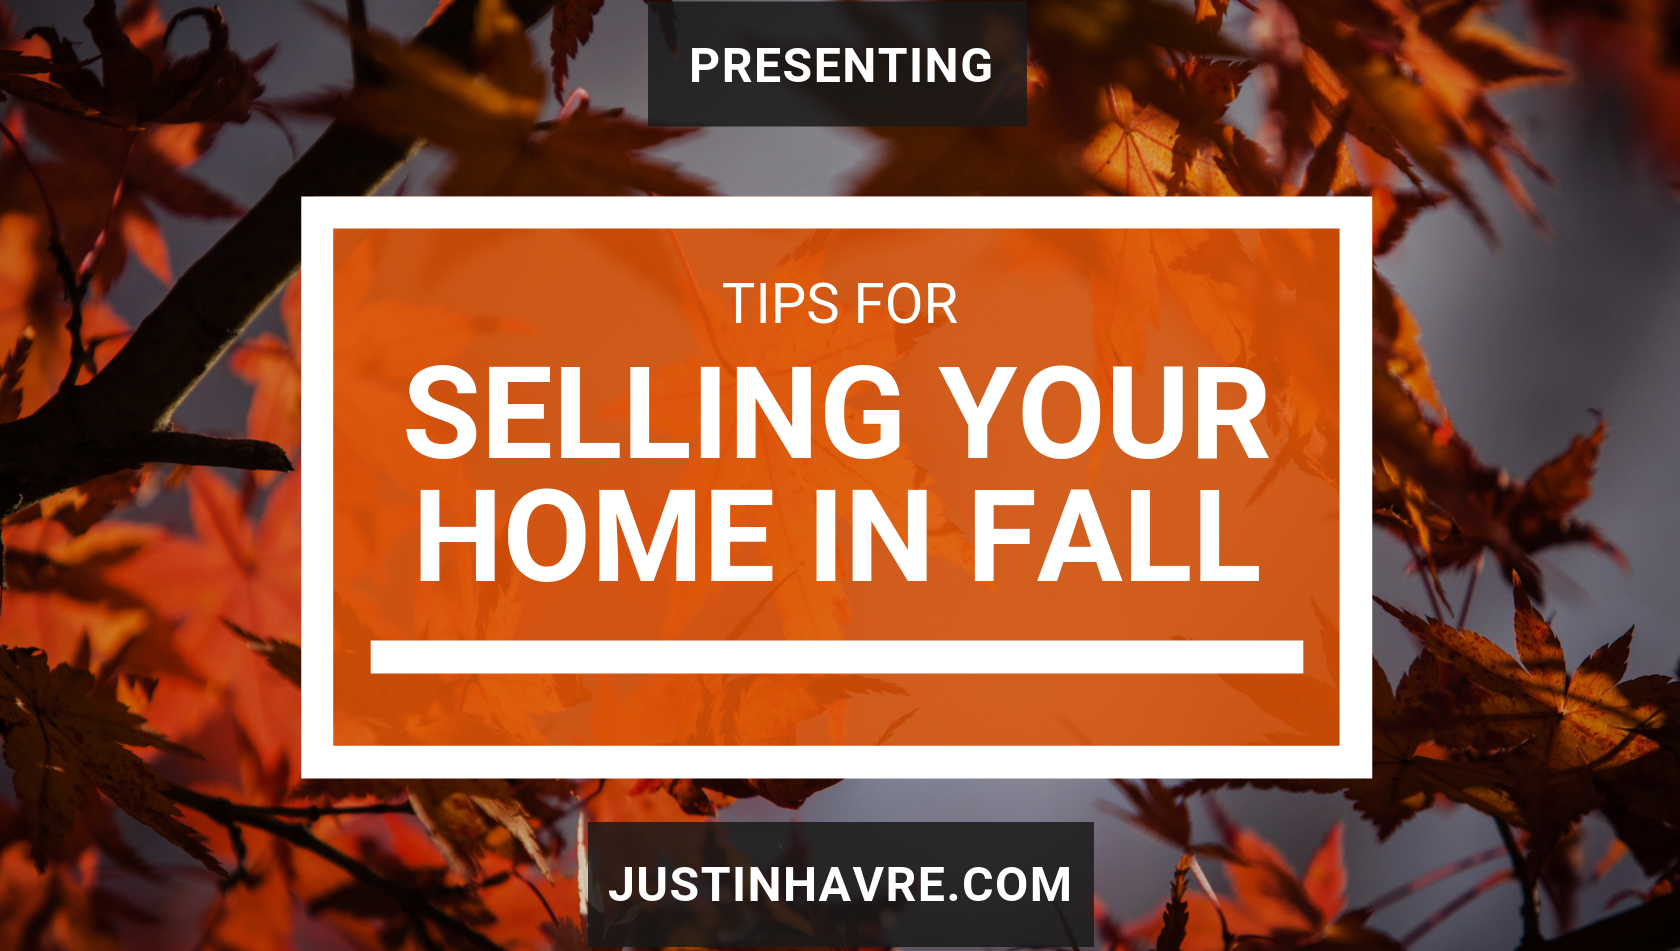 Tips for Selling a Home in Fall